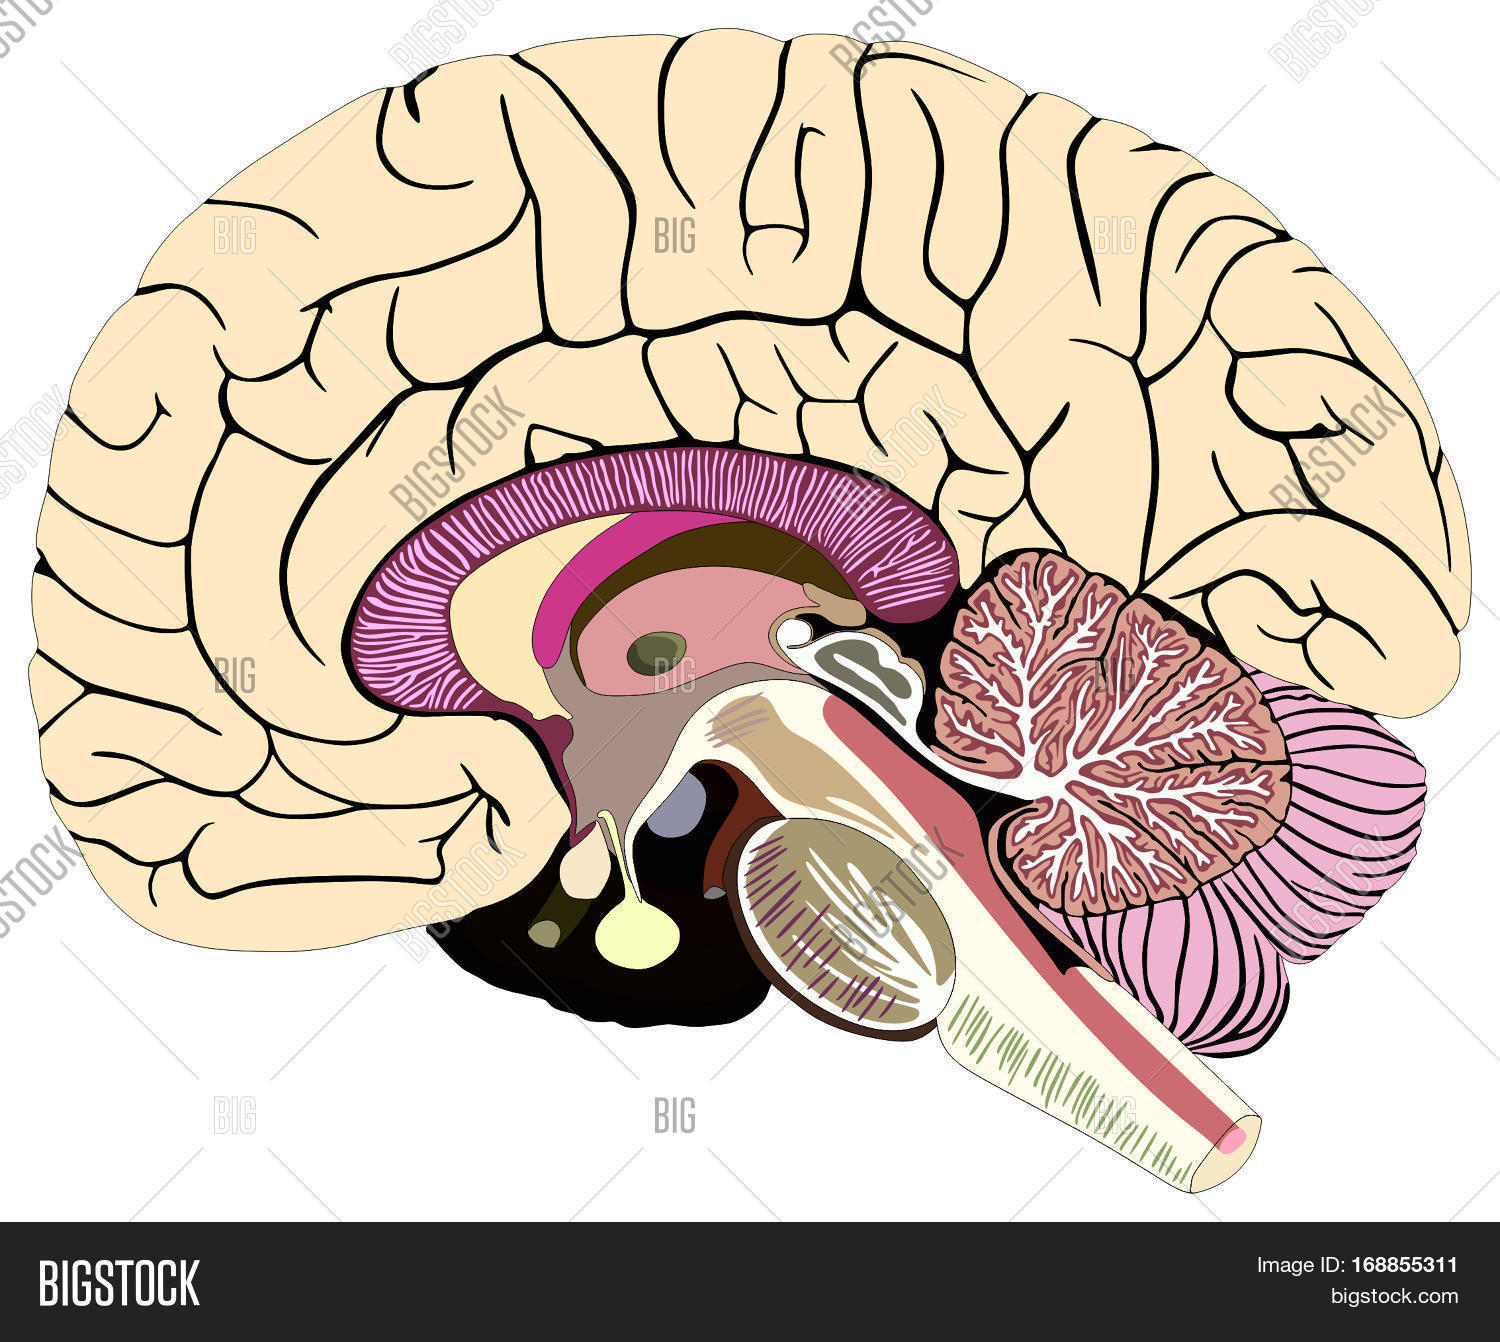 Median Section Human Image & Photo (Free Trial) | Bigstock